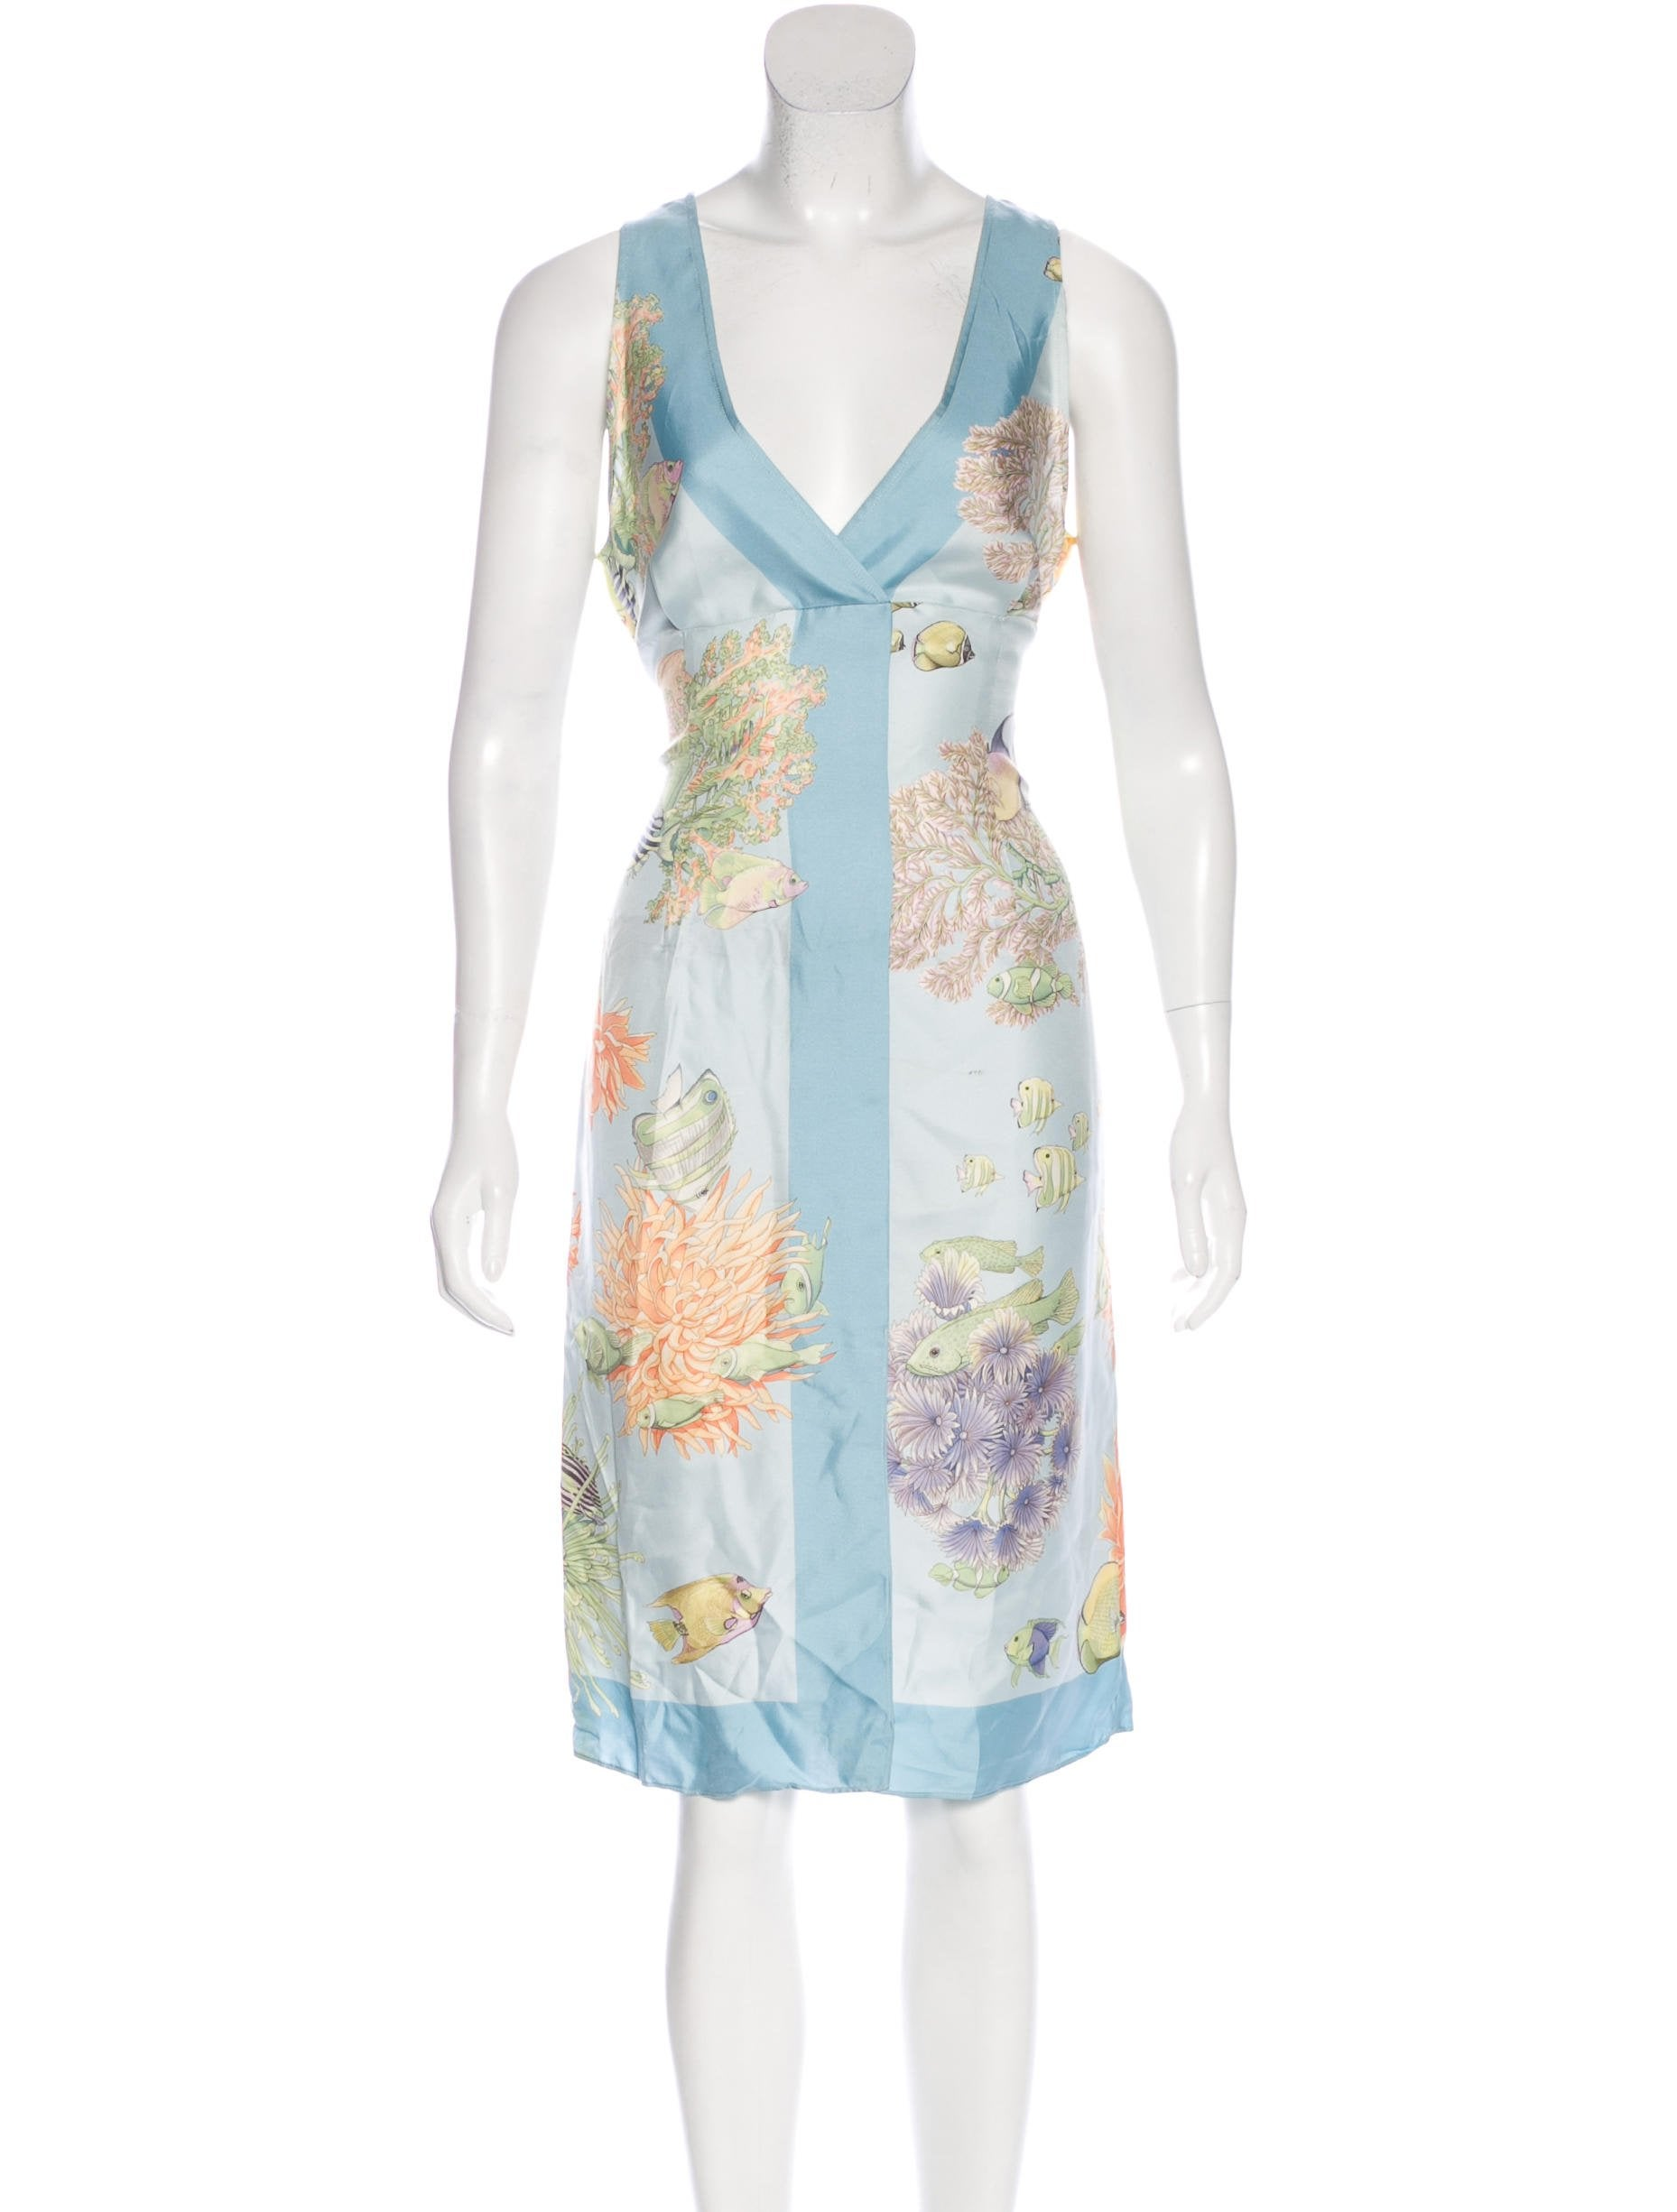 Salvatore Ferragamo Silk Ocean Print Dress - Clothing ...